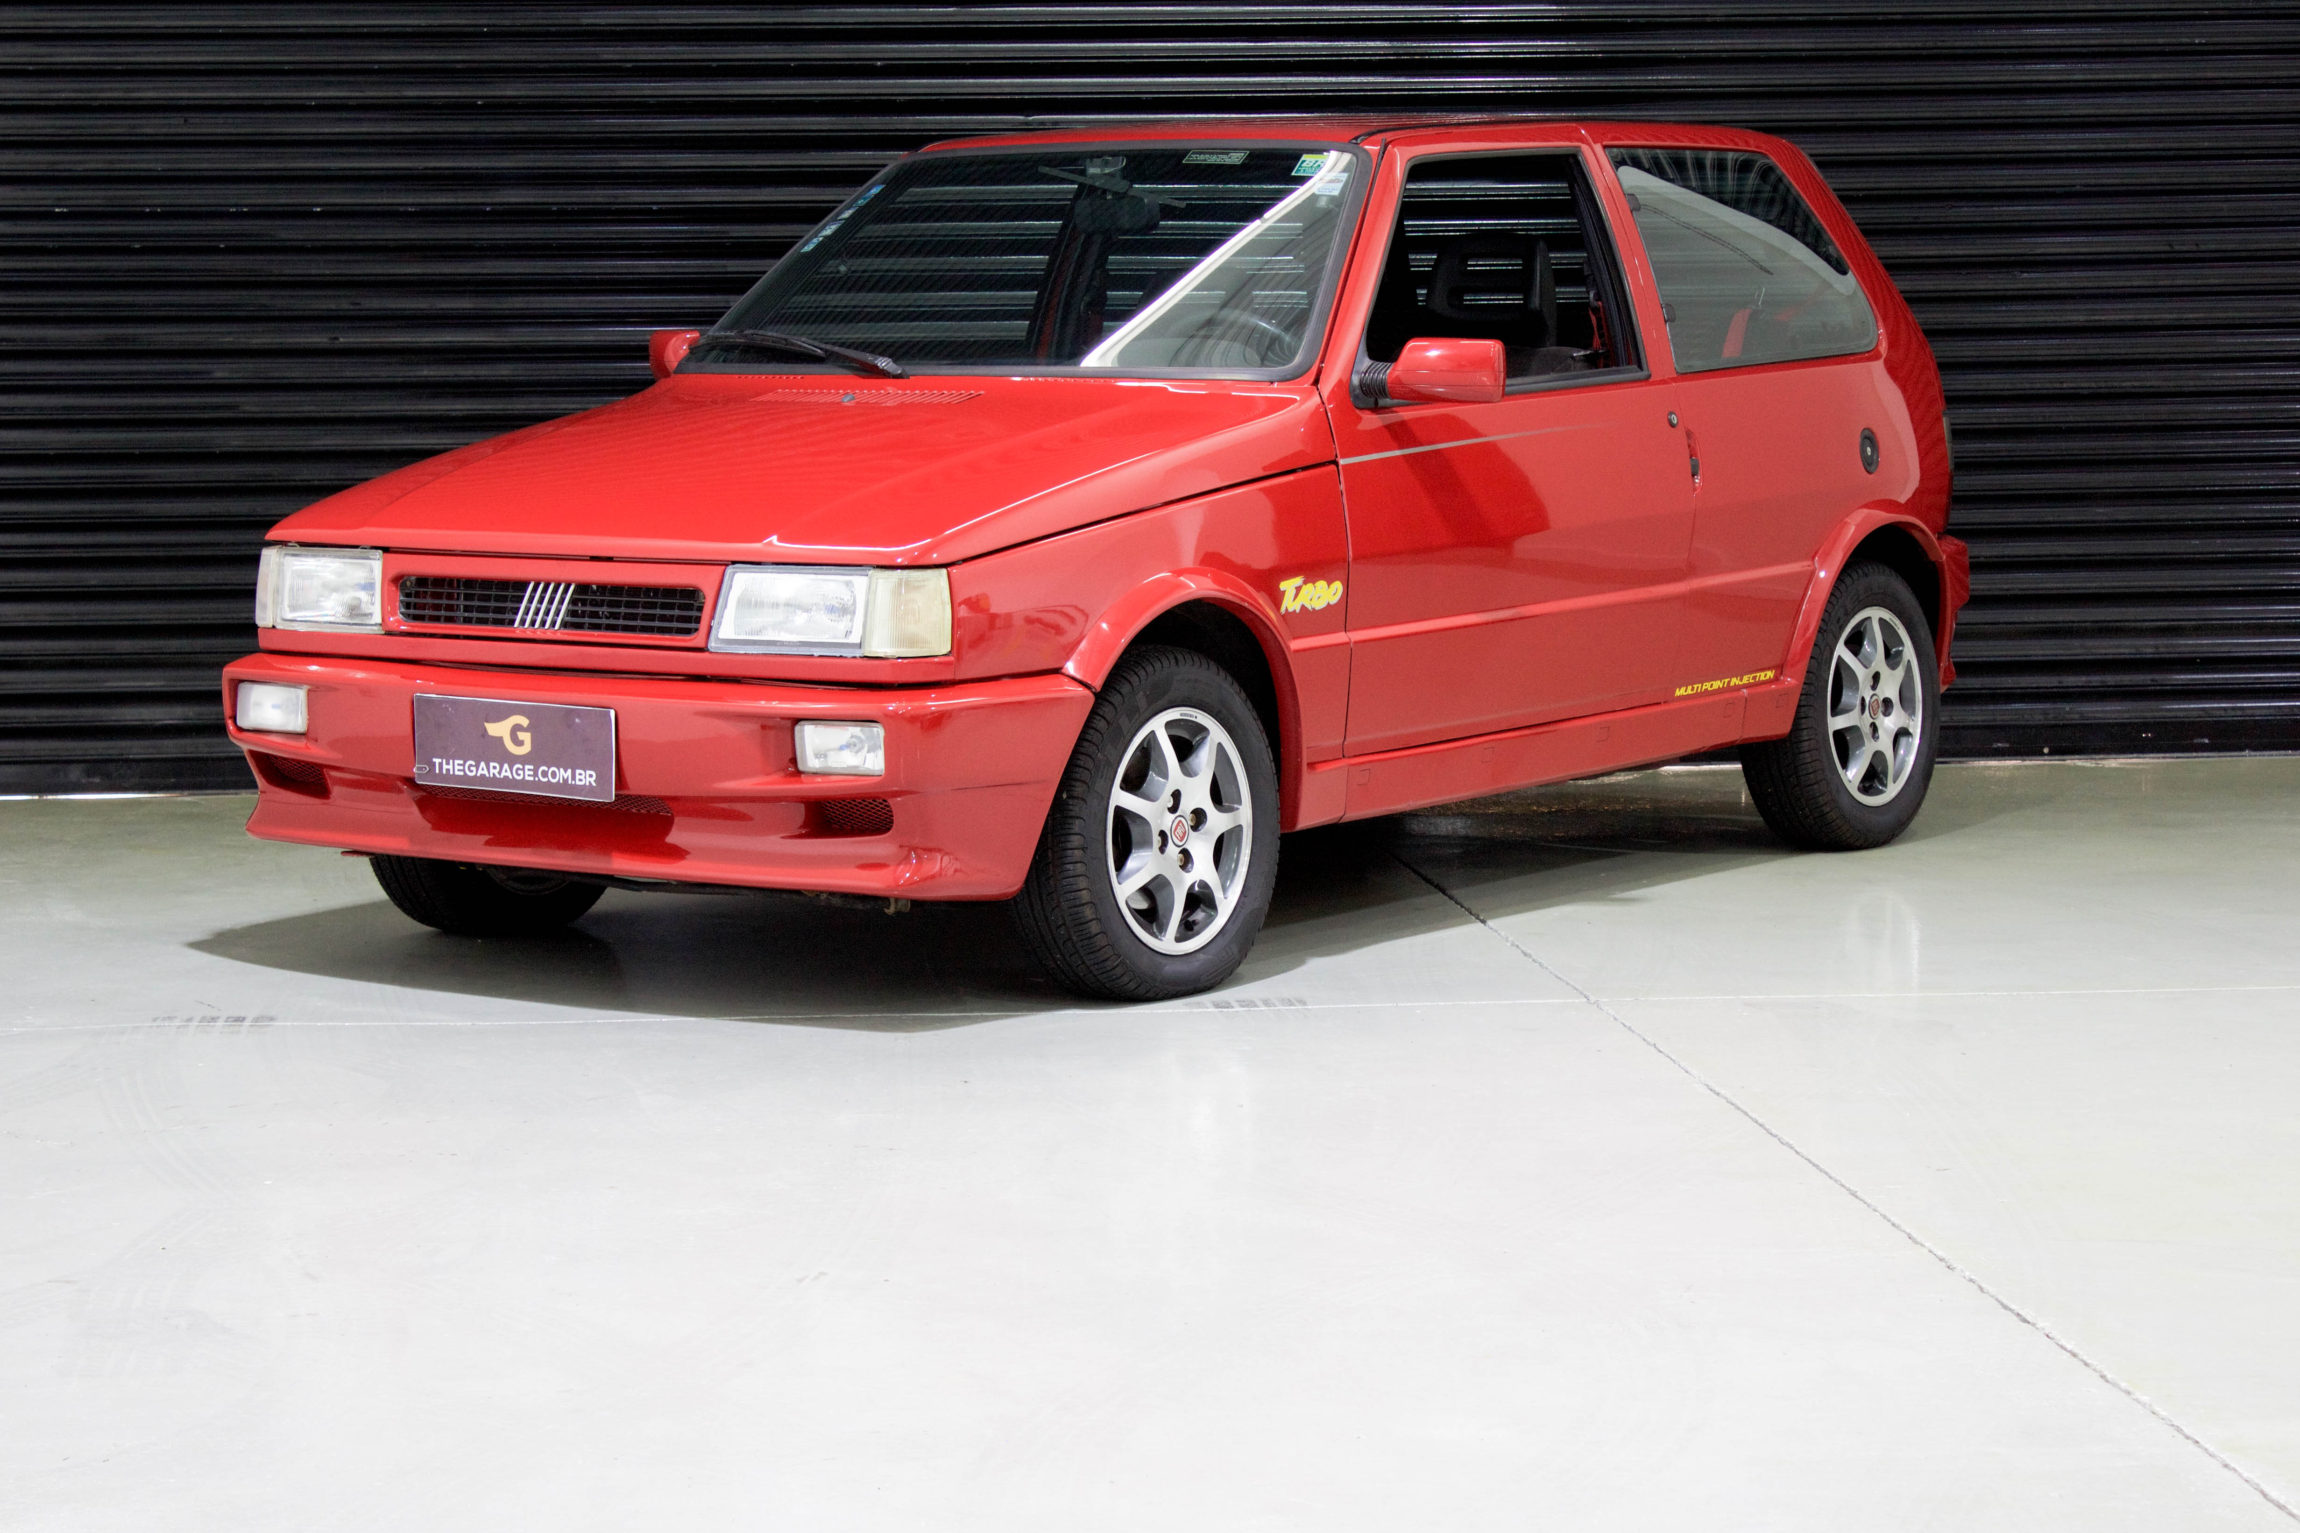 1994 fiat uno turbo the garage for Garage fiat 94